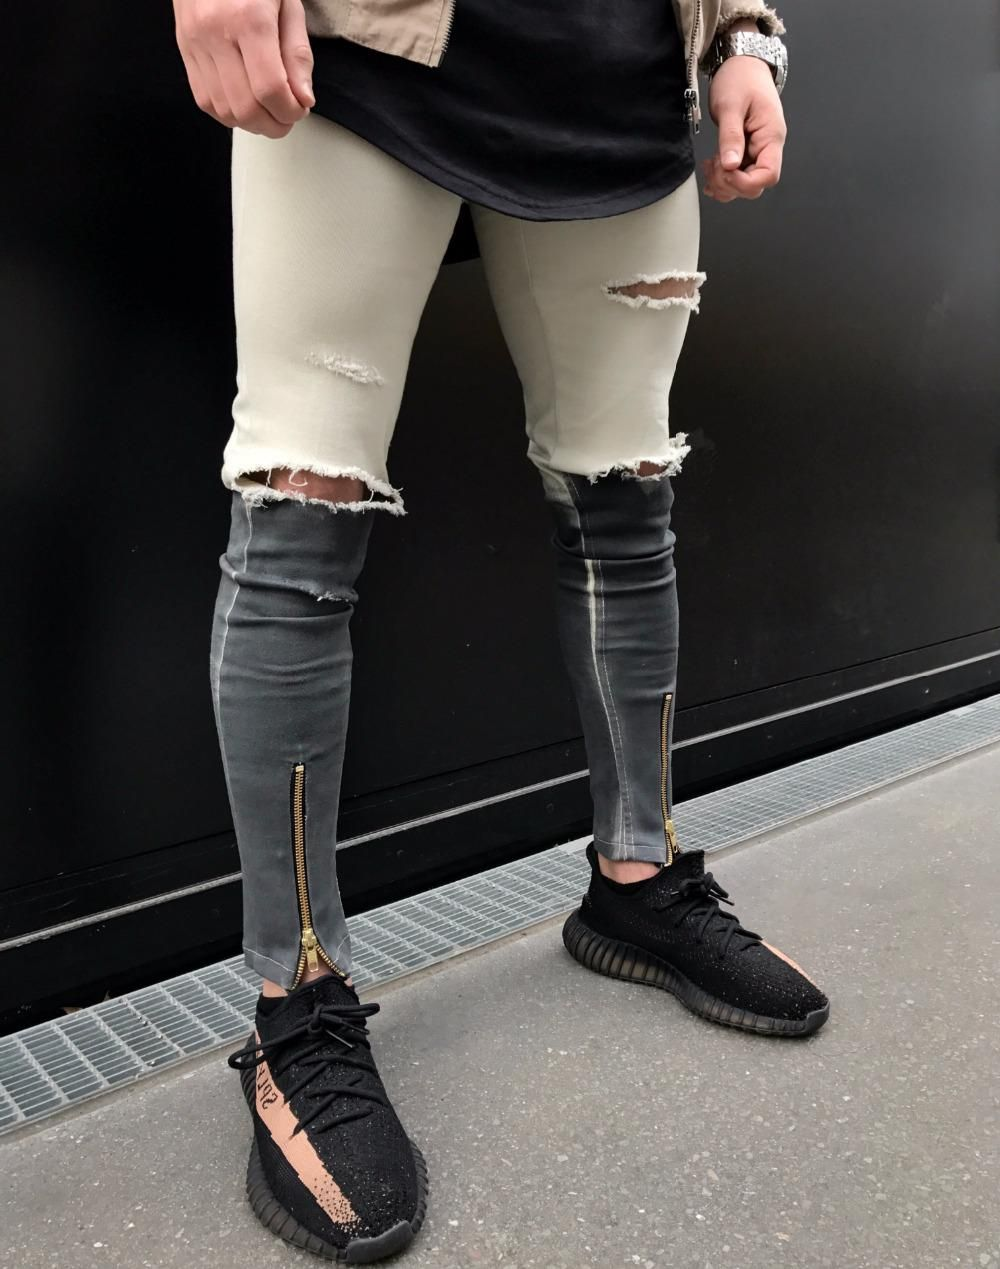 12adb56fce9 2018 New Men Ripped holes jeans Zip skinny biker jeans black white jeans  with Beggar pants Splice hip hop jeans men pants. Yesterday s price  US   32.90 ...